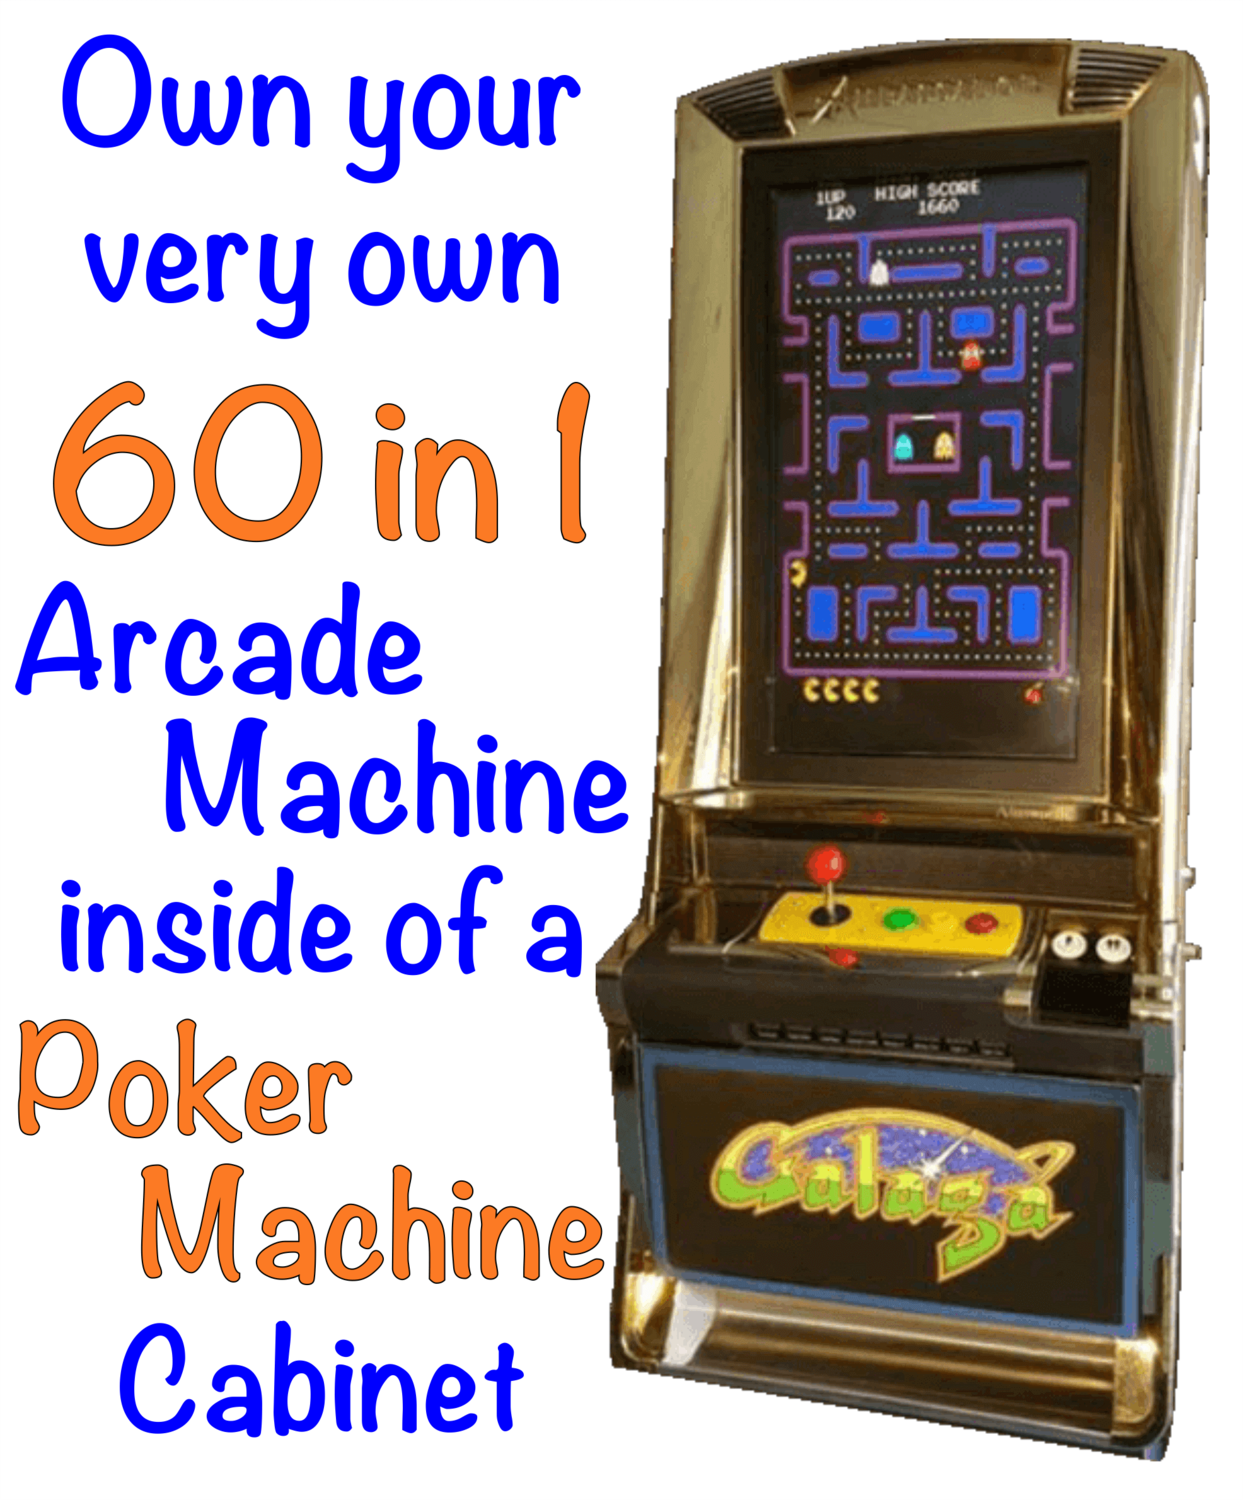 Arcade Poker Machine